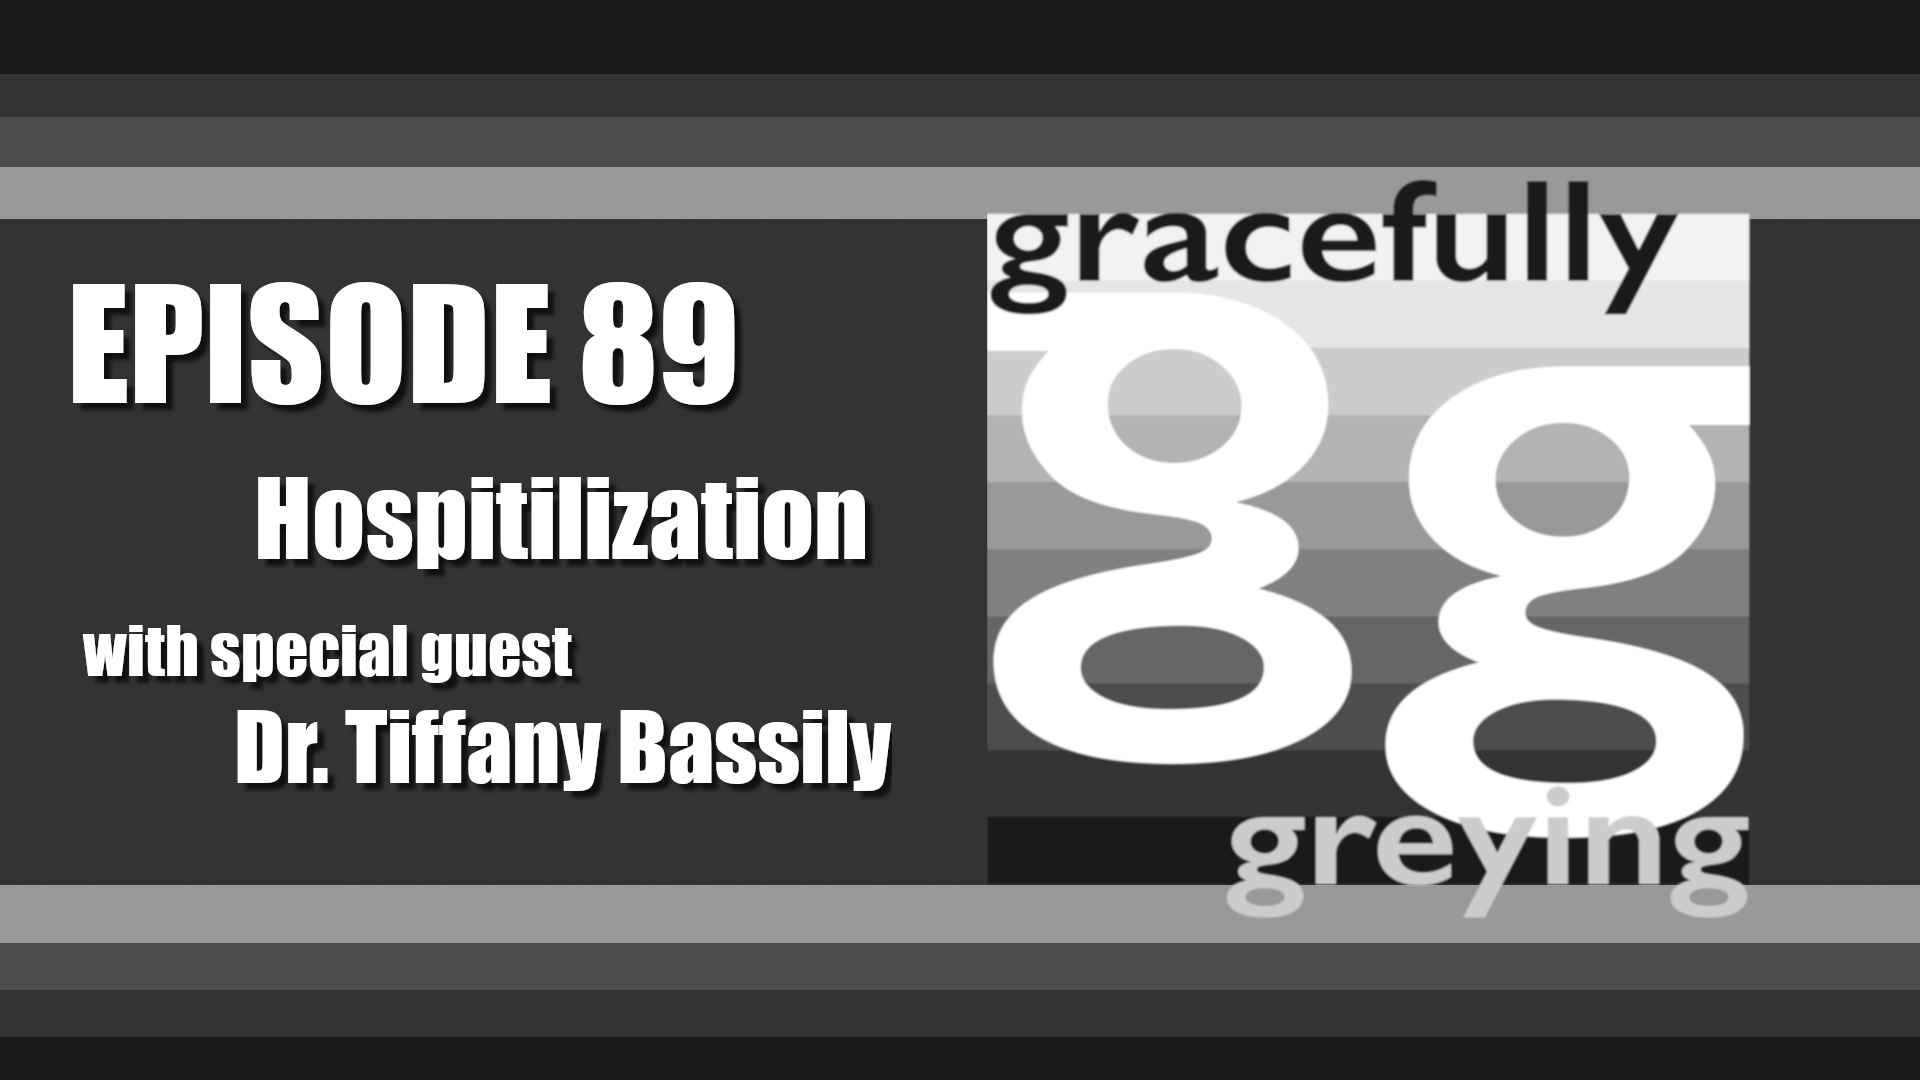 Gracefully Greying - Episode 89